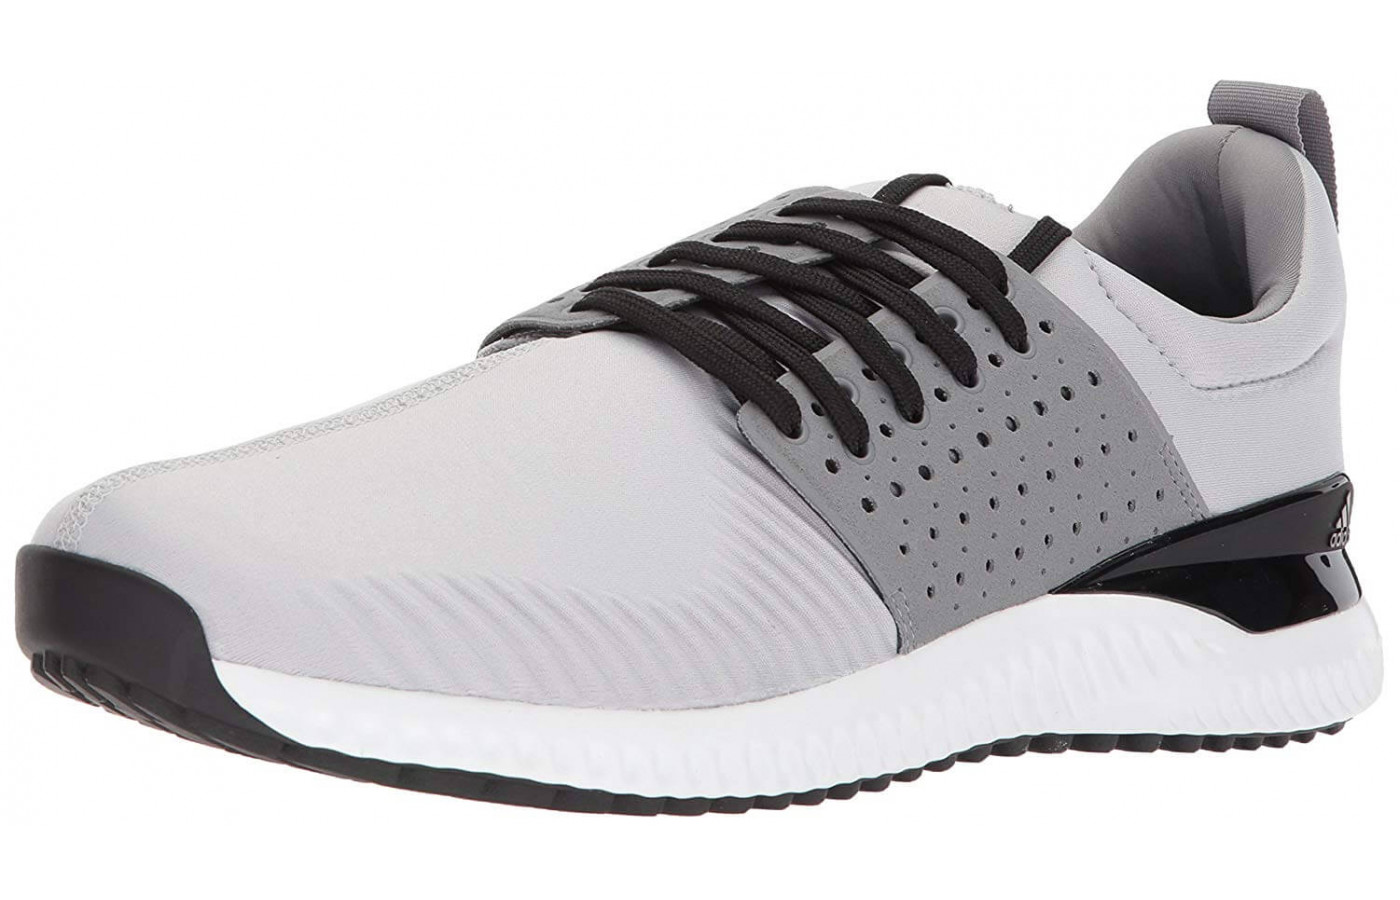 ee0ad689d Adidas Adicross Bounce Review - Buy or Not in May 2019